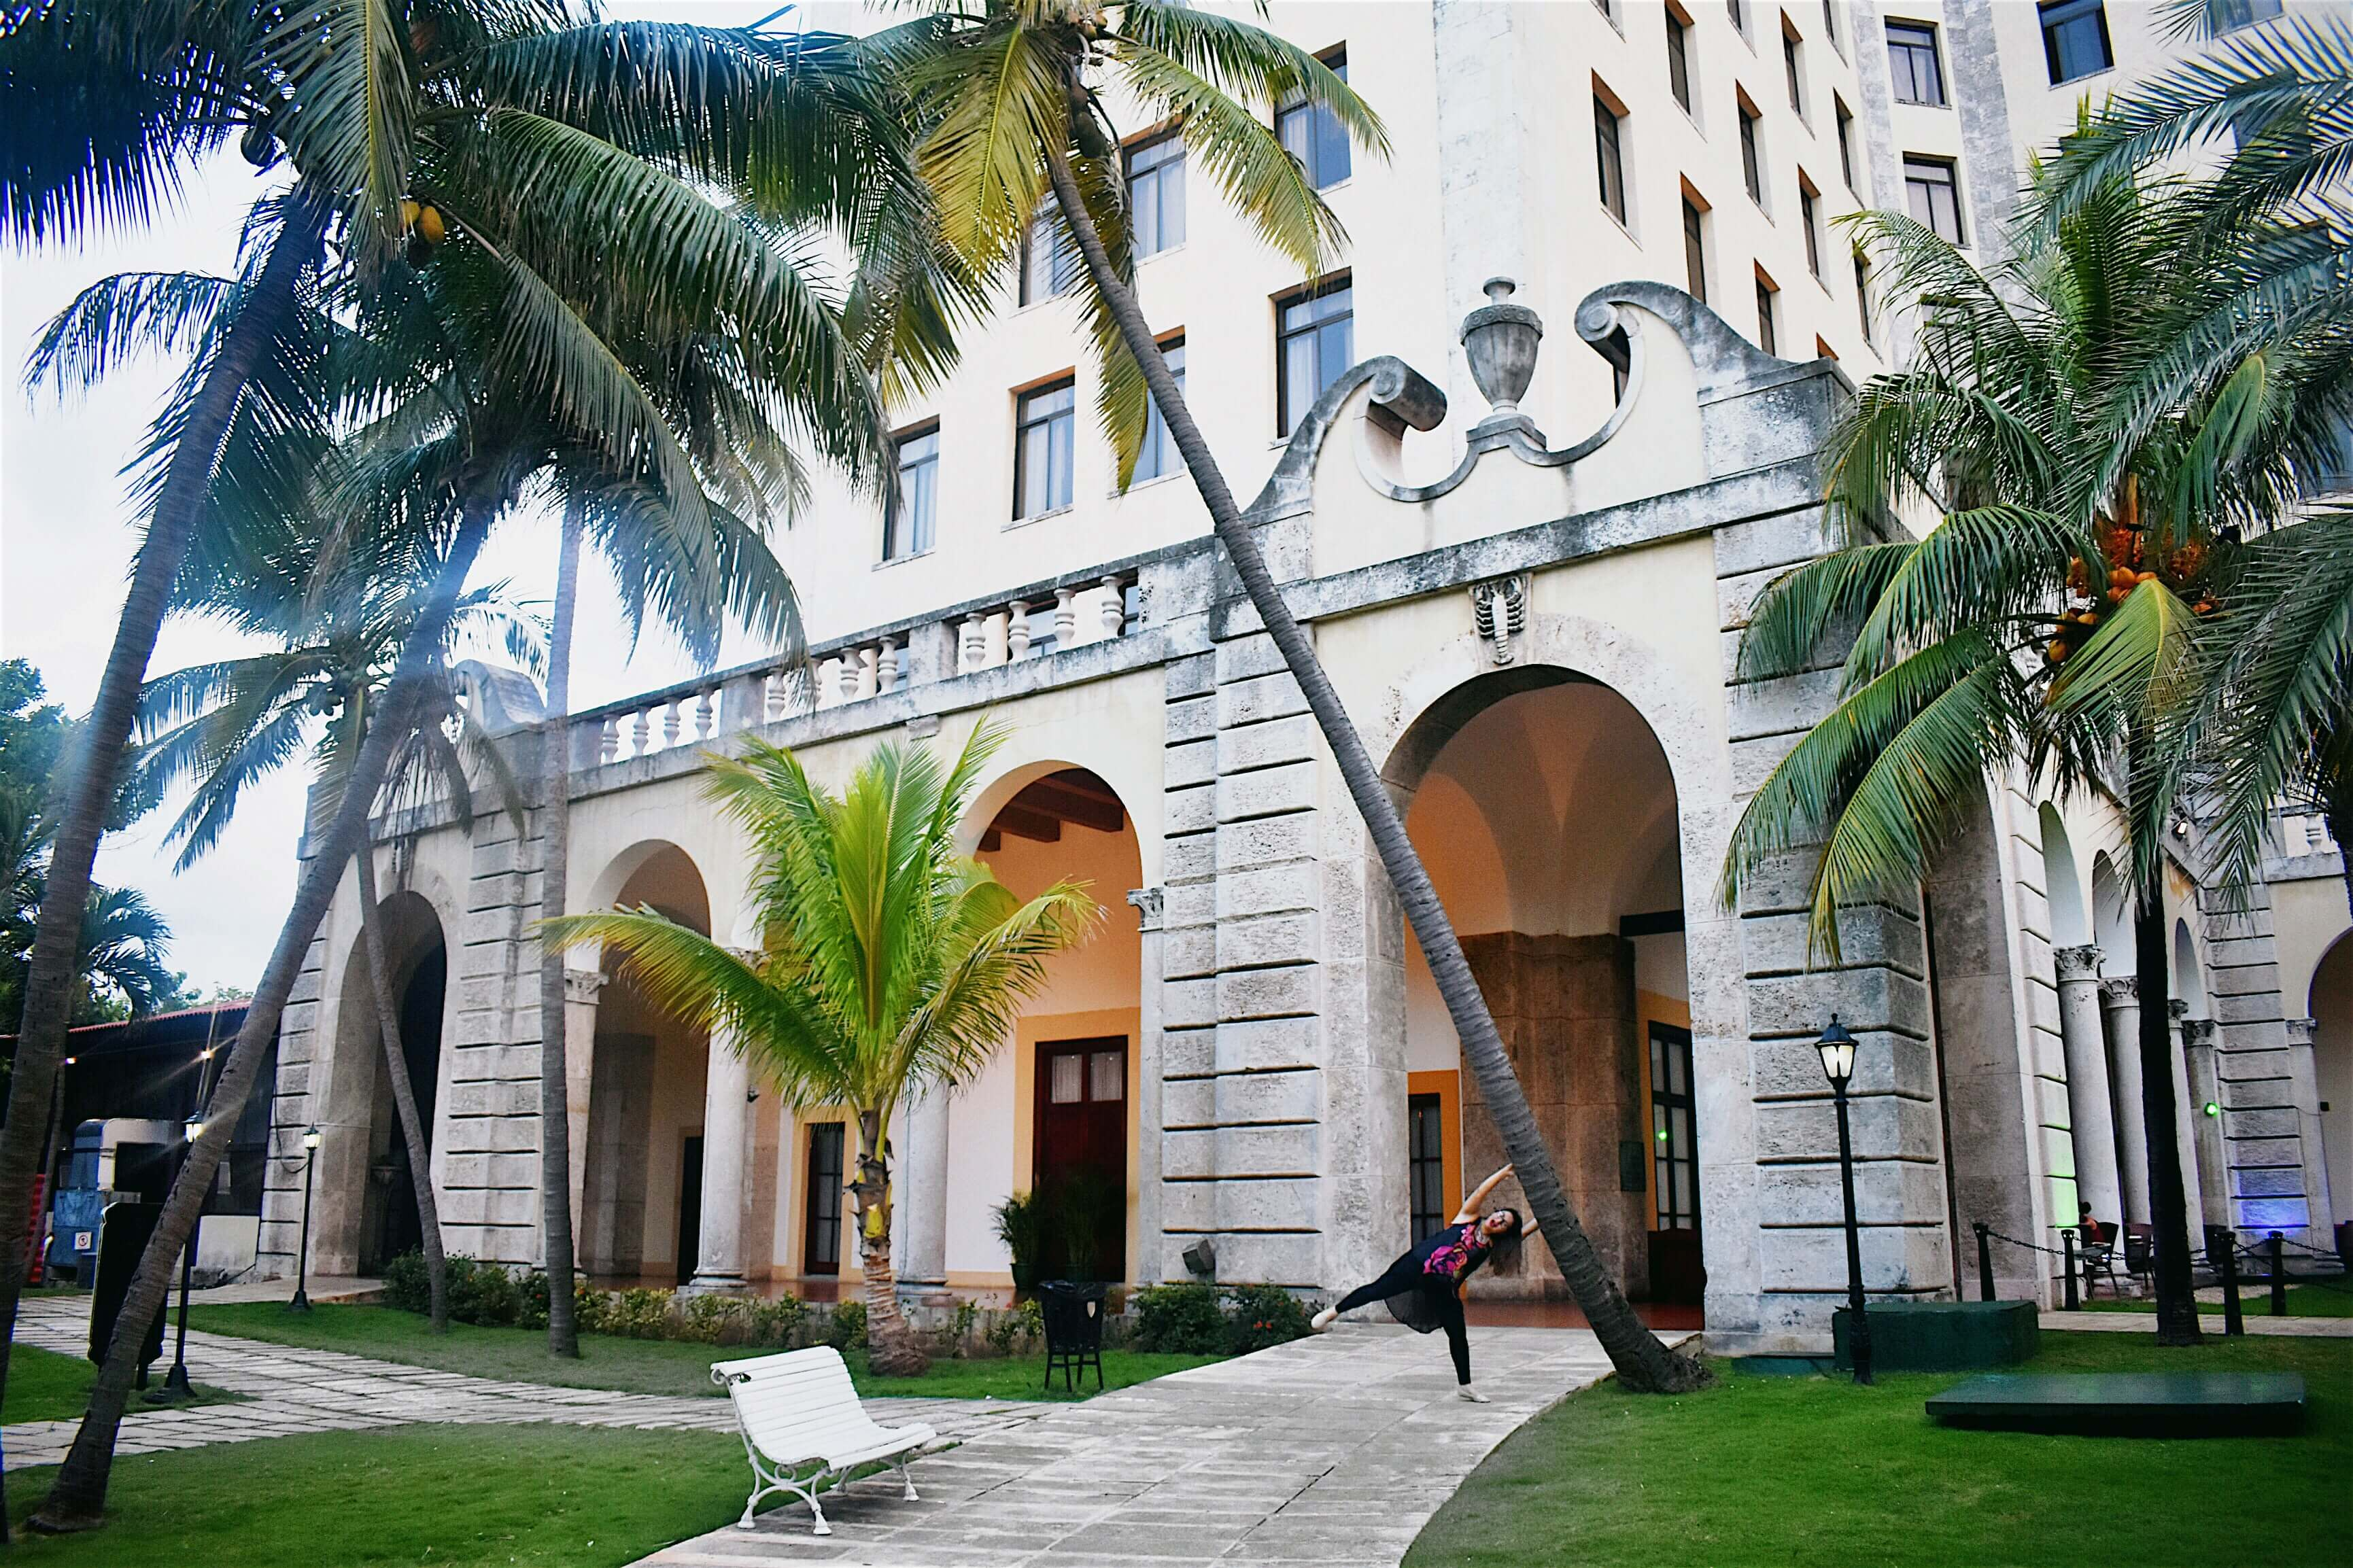 The courtyard of Hotel Nacional with palm trees surrounding the luxurious building